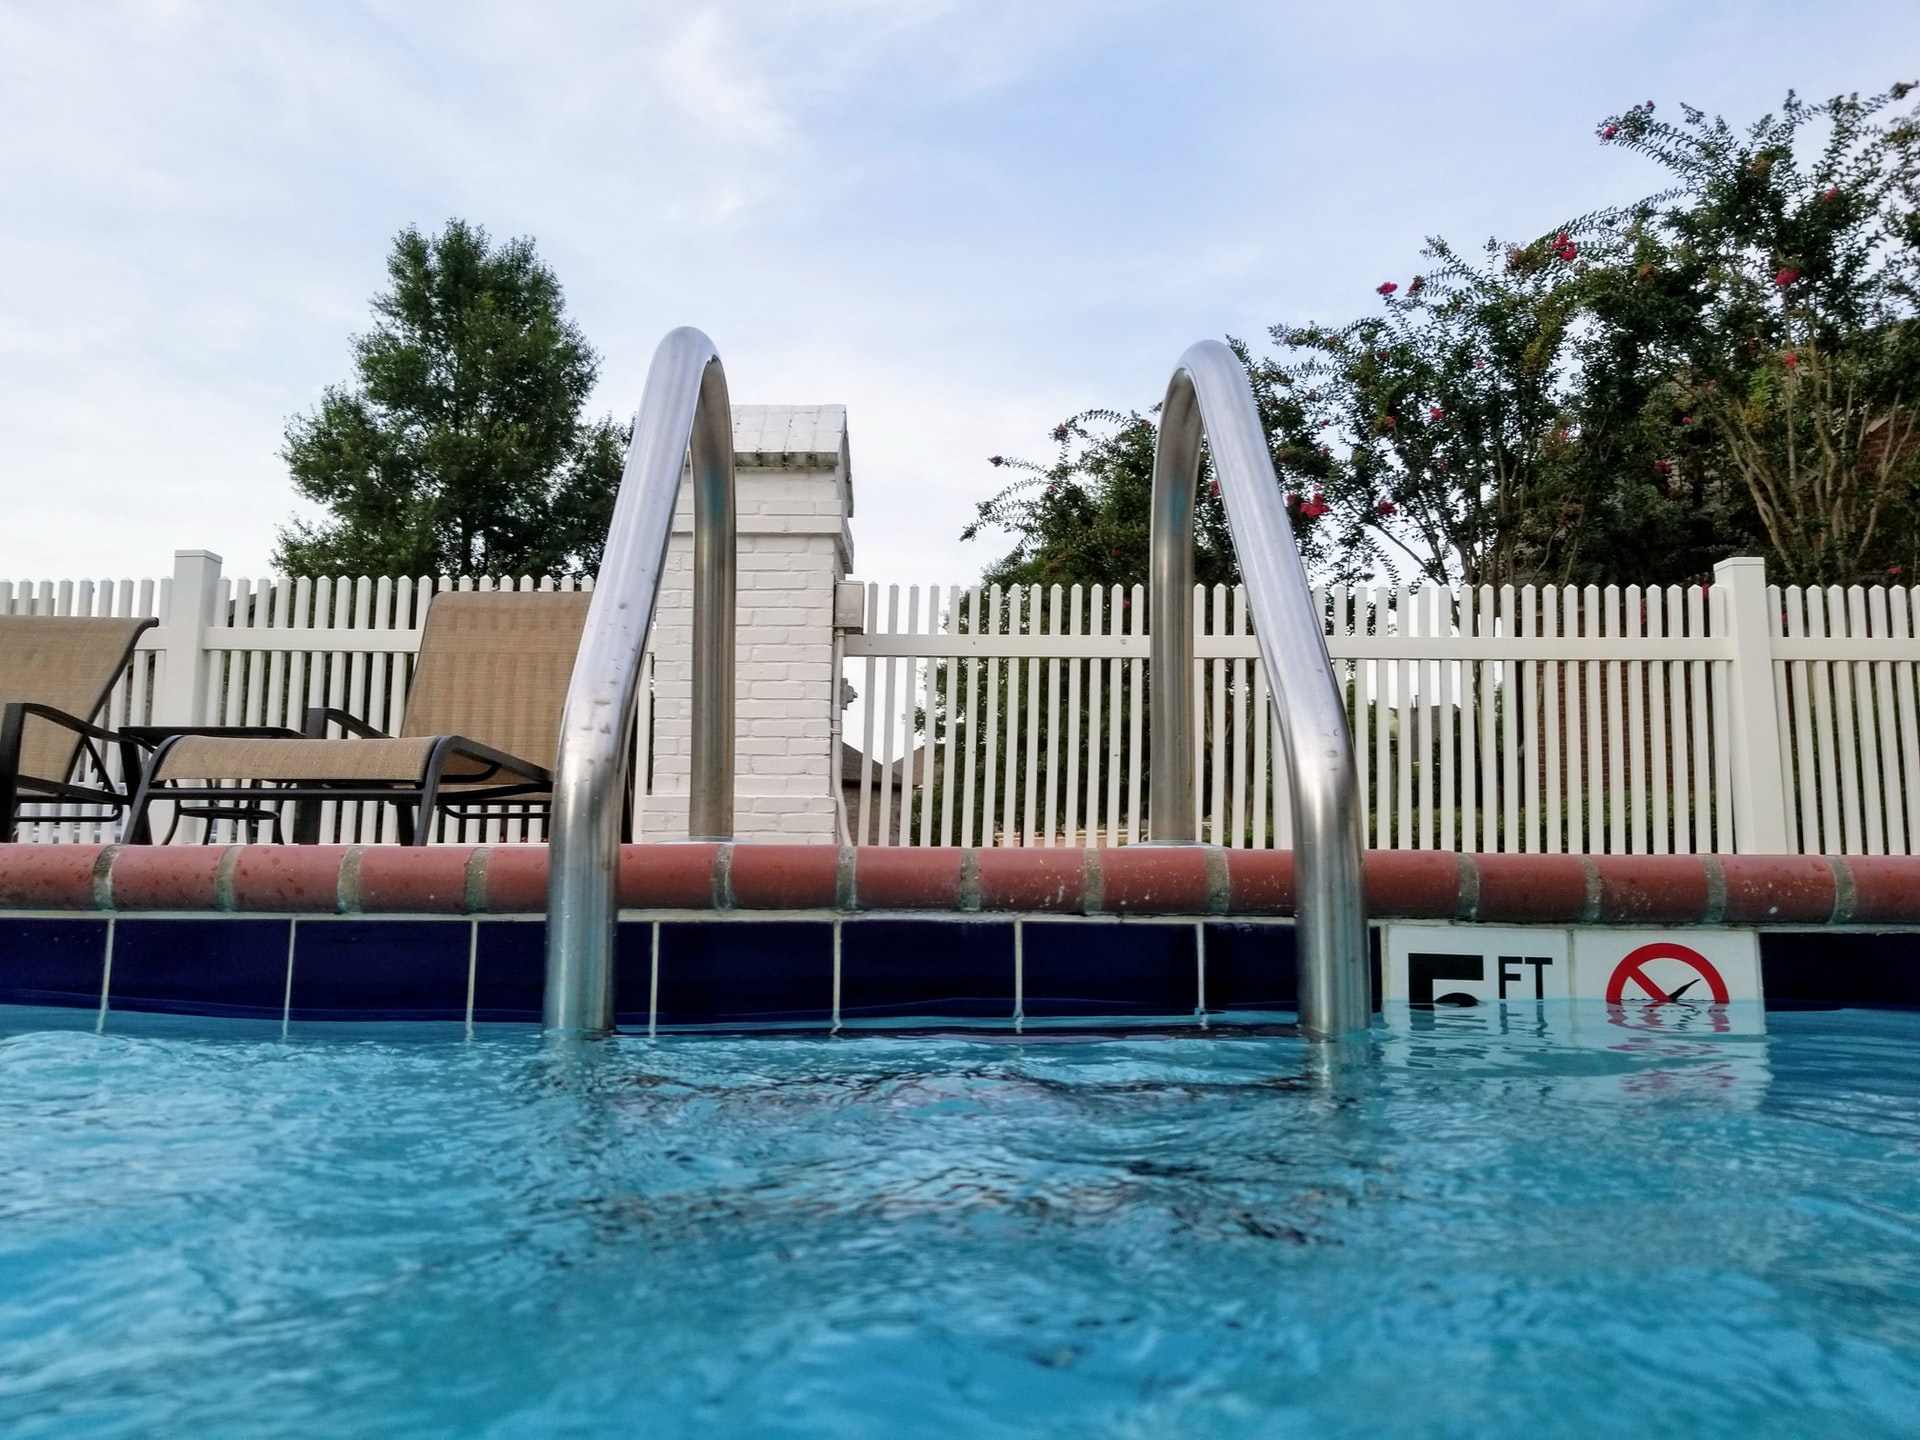 community association pool opening guidelines COVID-19